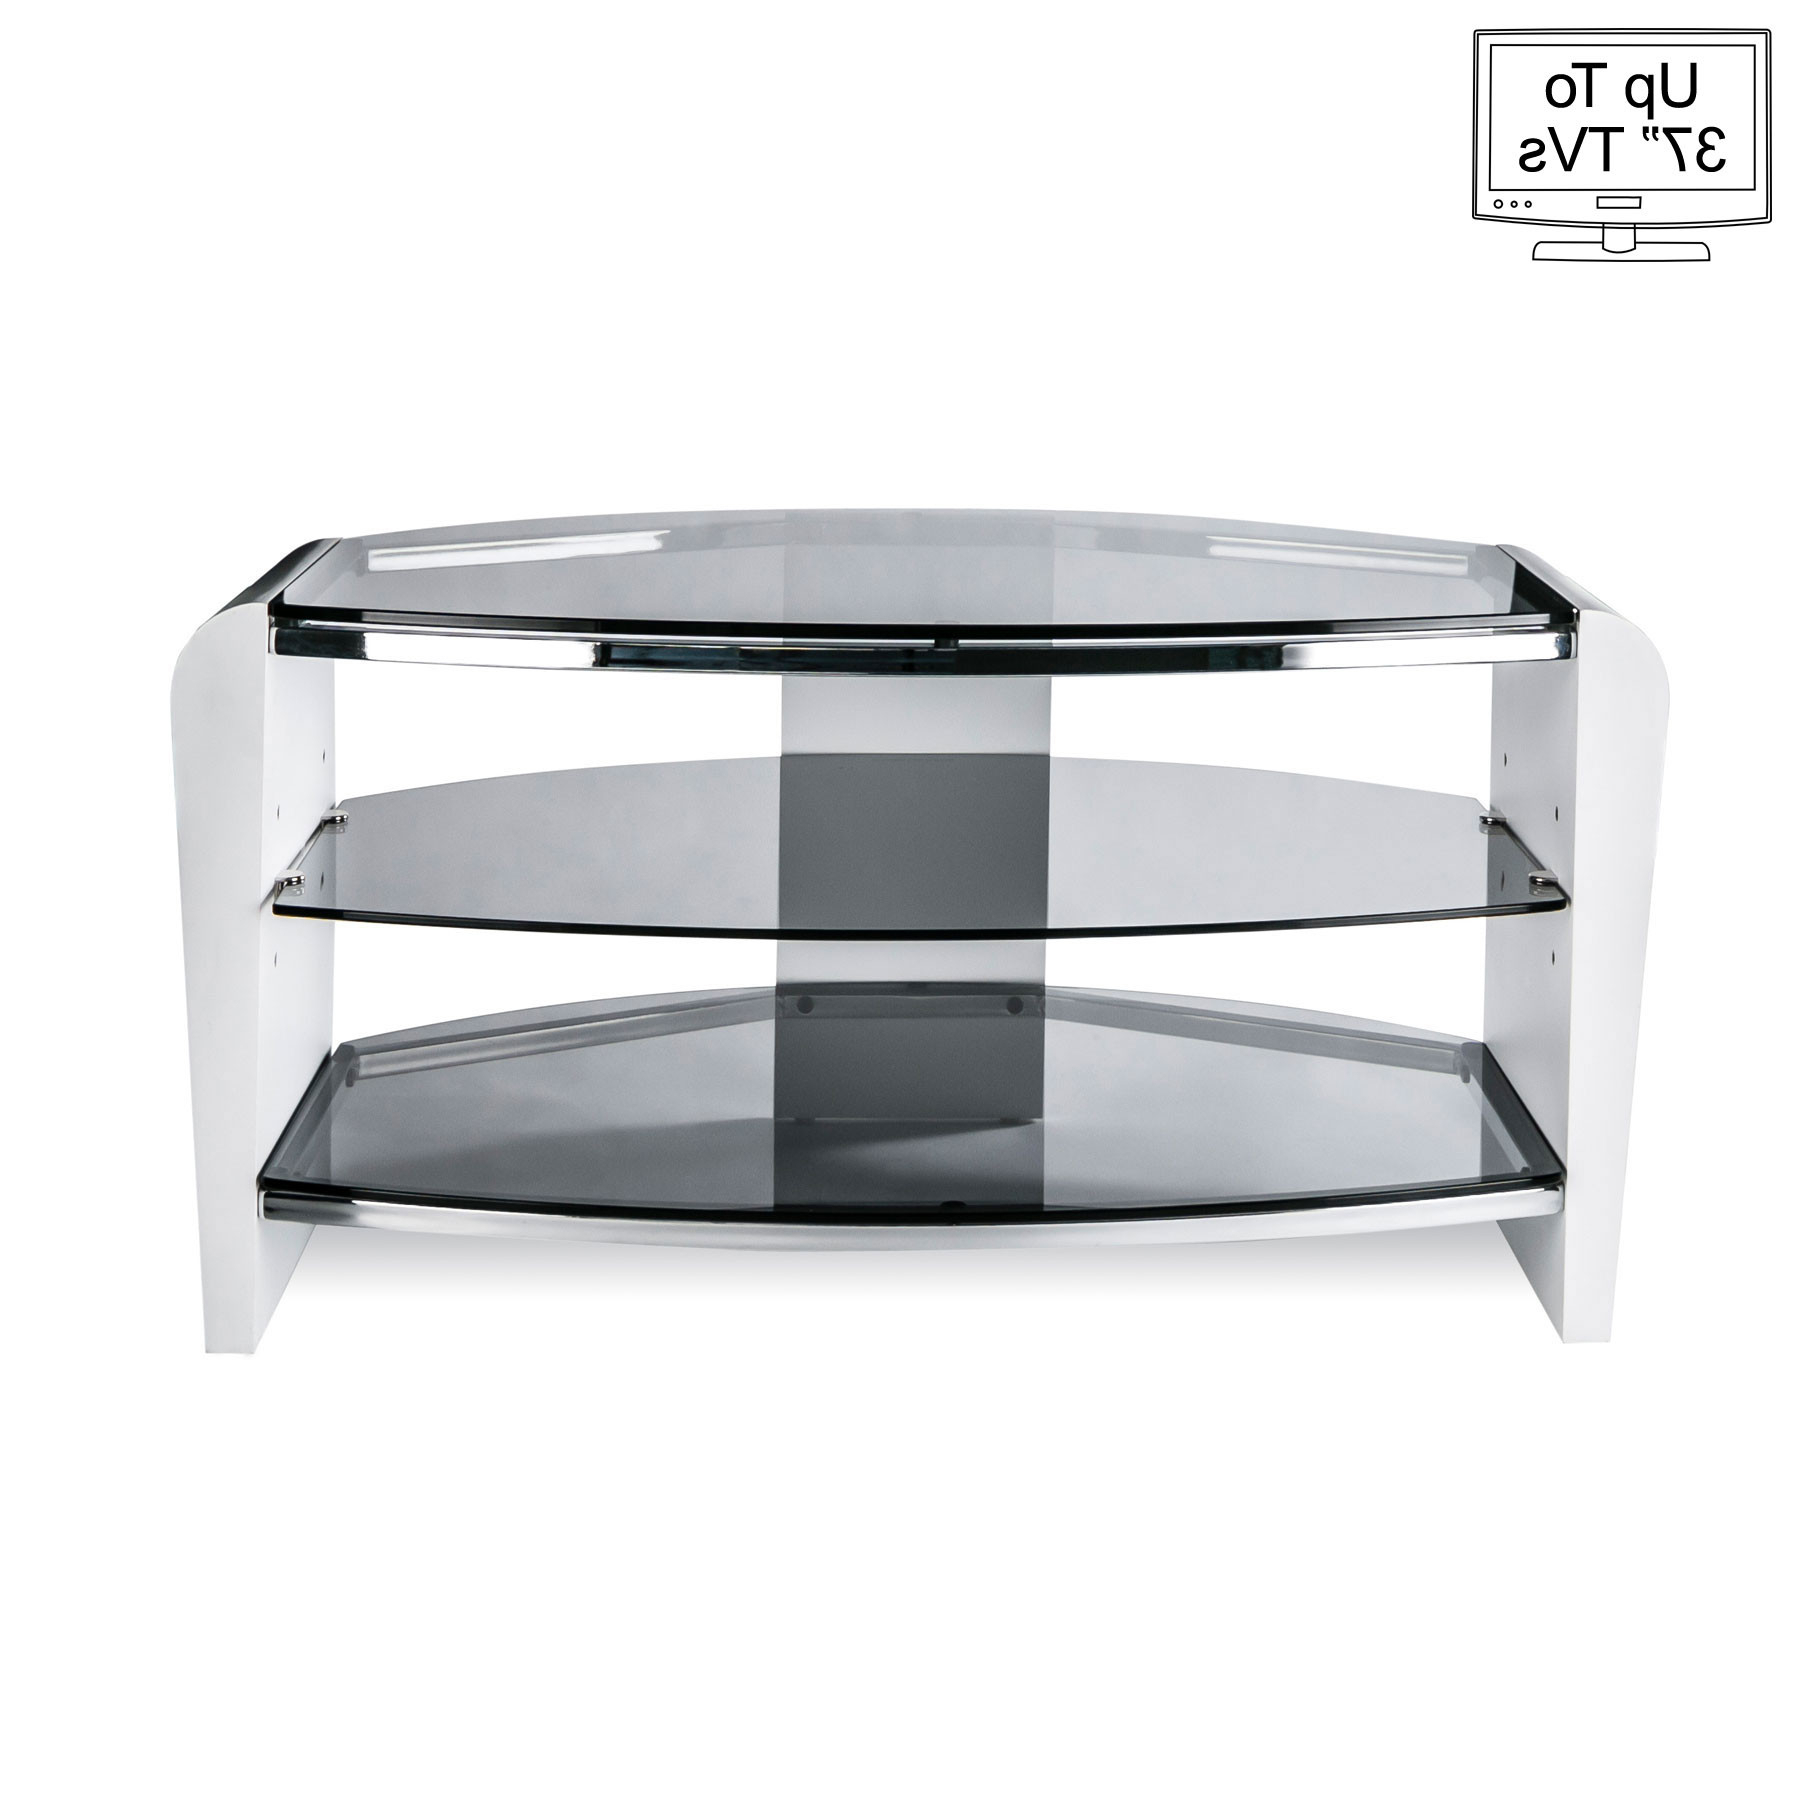 "Smoked Glass Tv Stands Intended For Current Alphason Francium 80Cm Smoked Glass Tv Stand For Up To 37"" Tvs (View 17 of 20)"